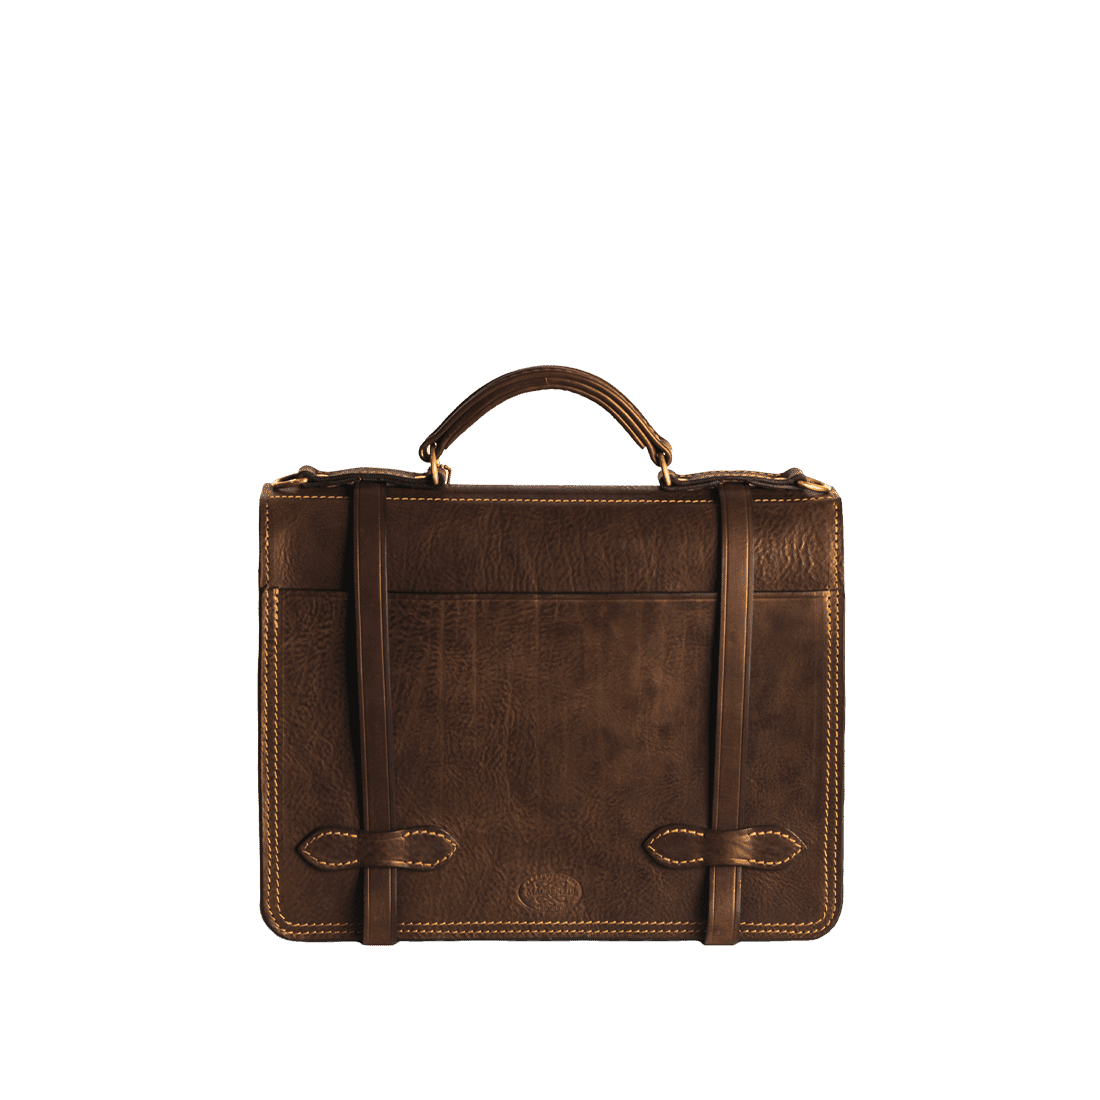 The Officers briefcase antique brown